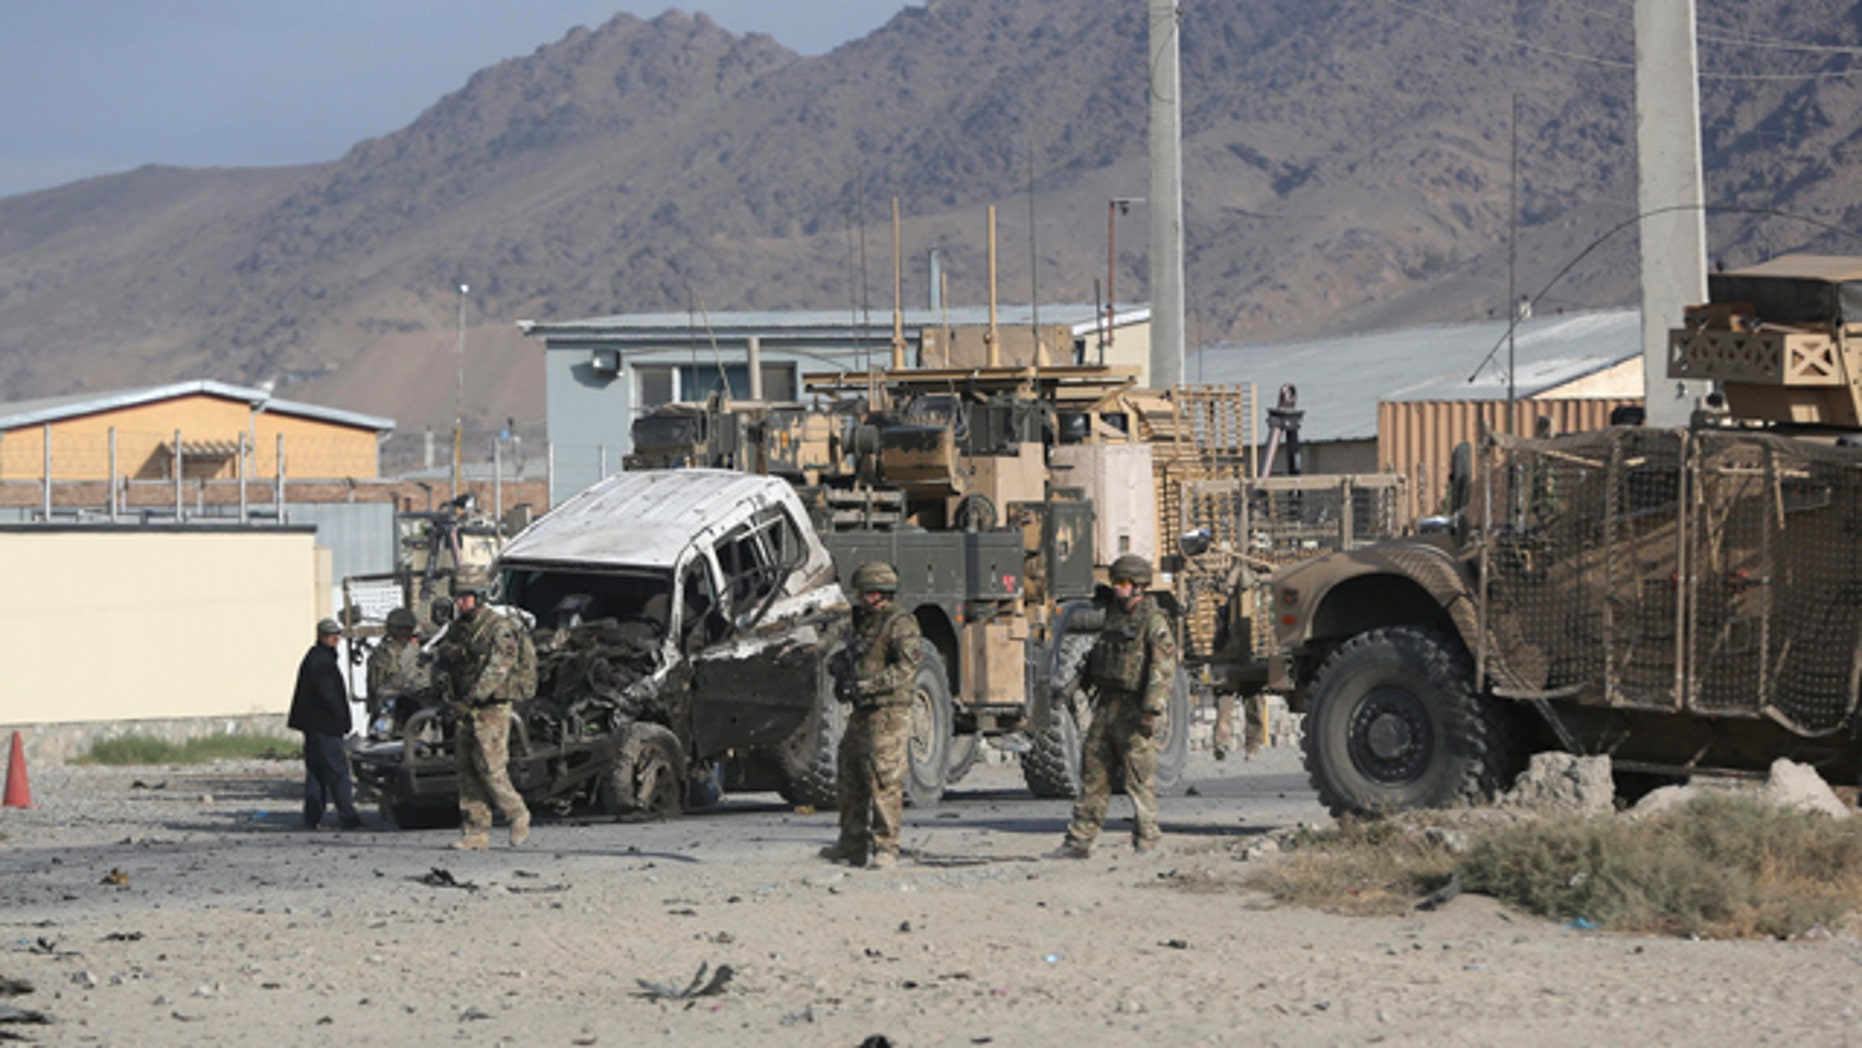 October 13, 2014: U.S. soldiers remove a destroyed vehicle from the site of a suicide attack in Kabul, Afghanistan. (AP Photo/Massoud Hossaini)